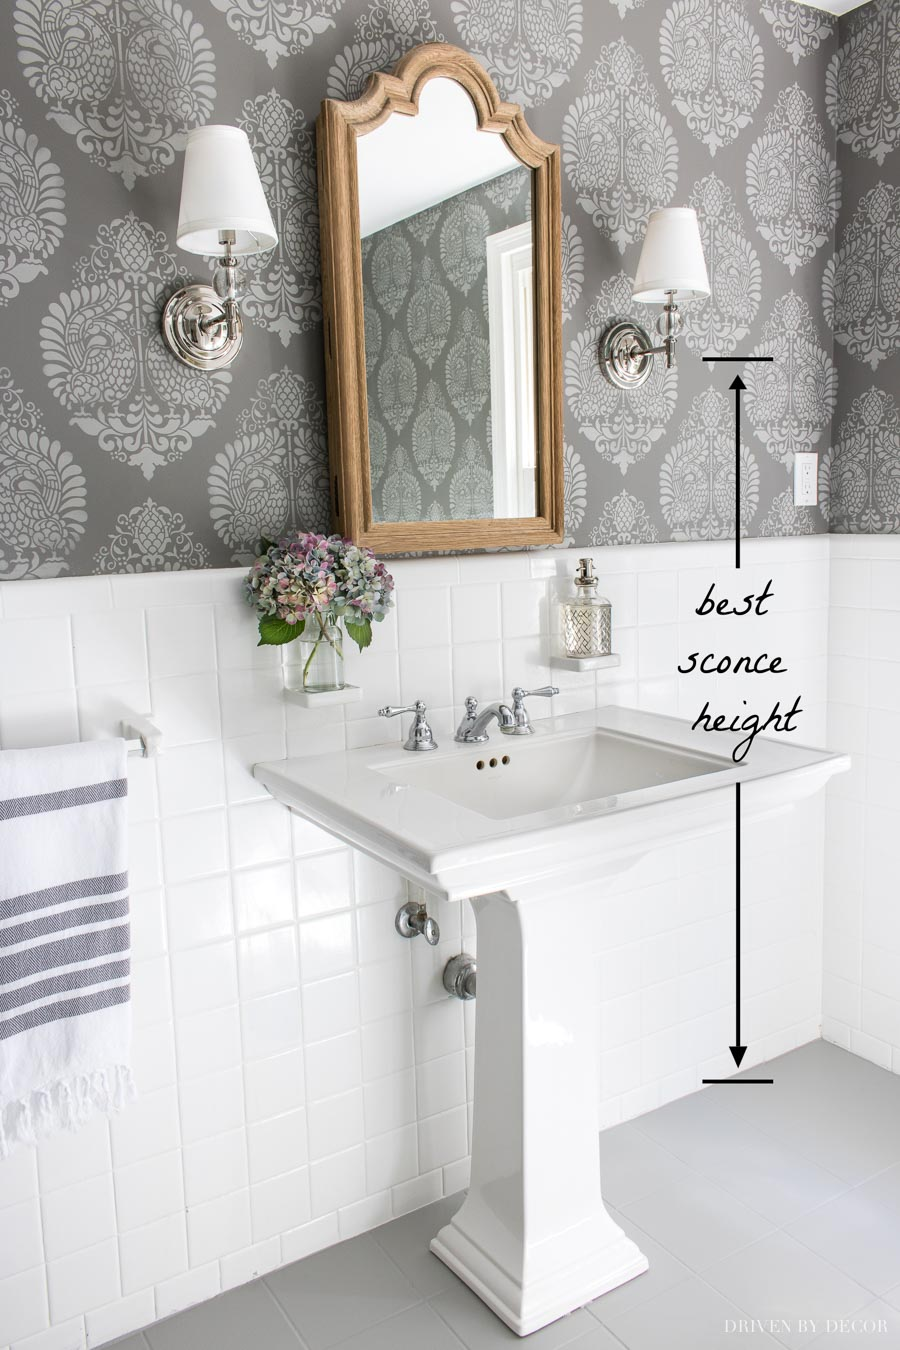 Great sconce height tip when you're mounting them in a bathroom!